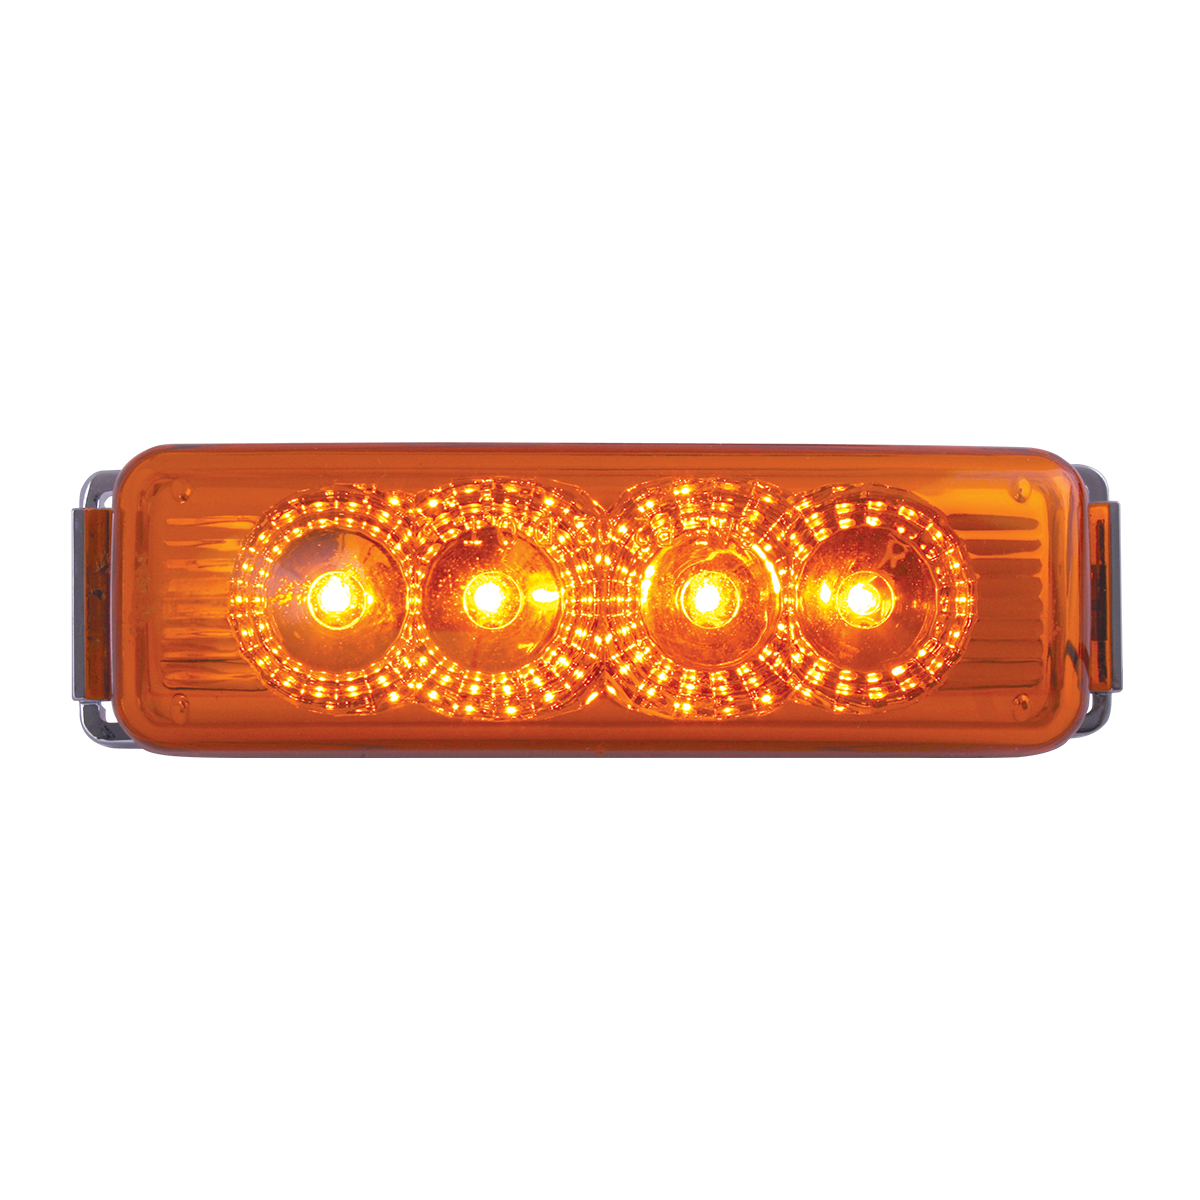 77860 Medium Rectangular Spyder LED Marker Light